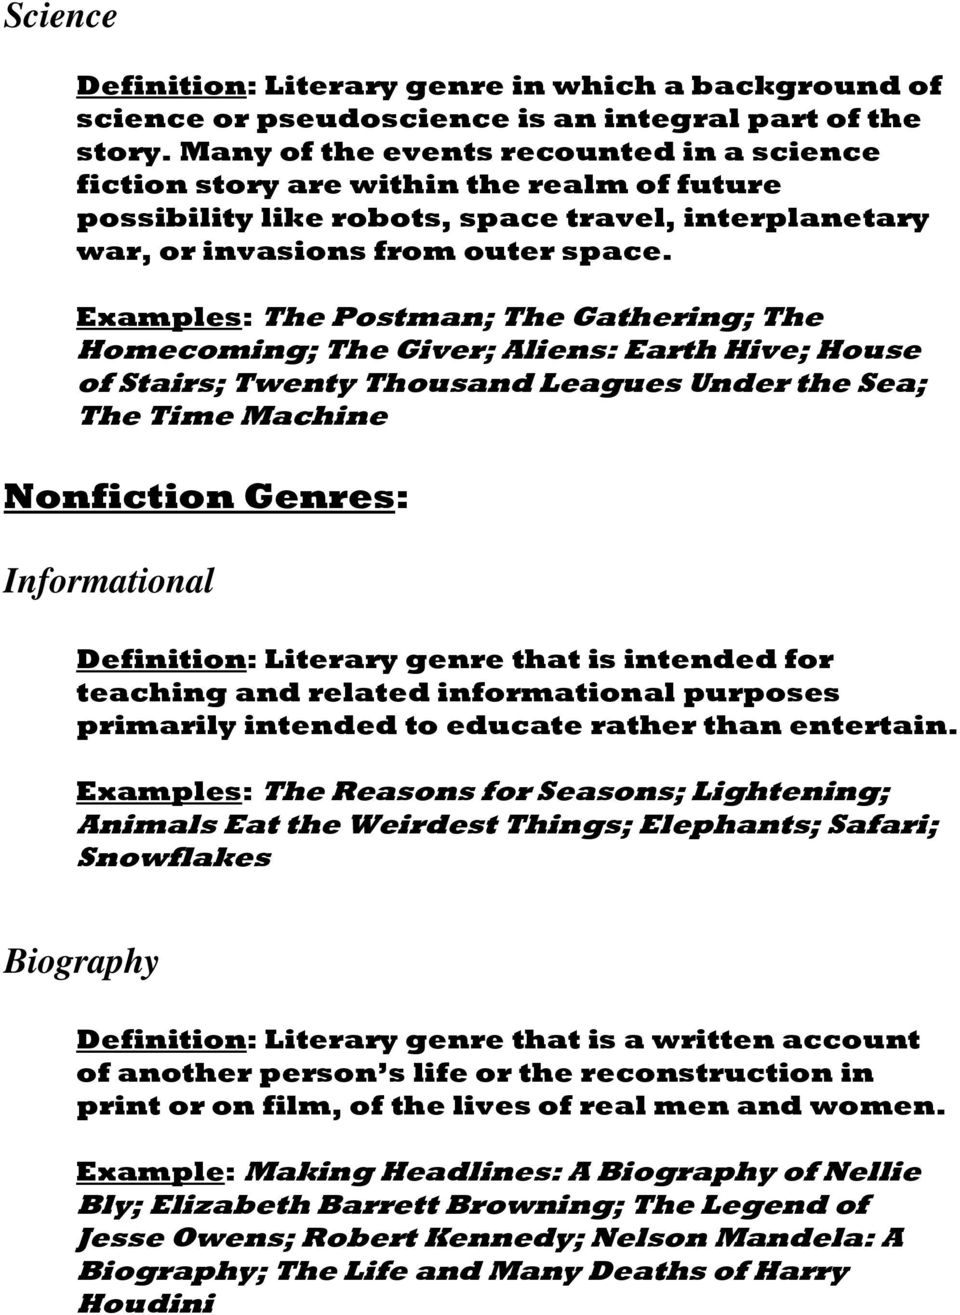 genre definition and examples in literature